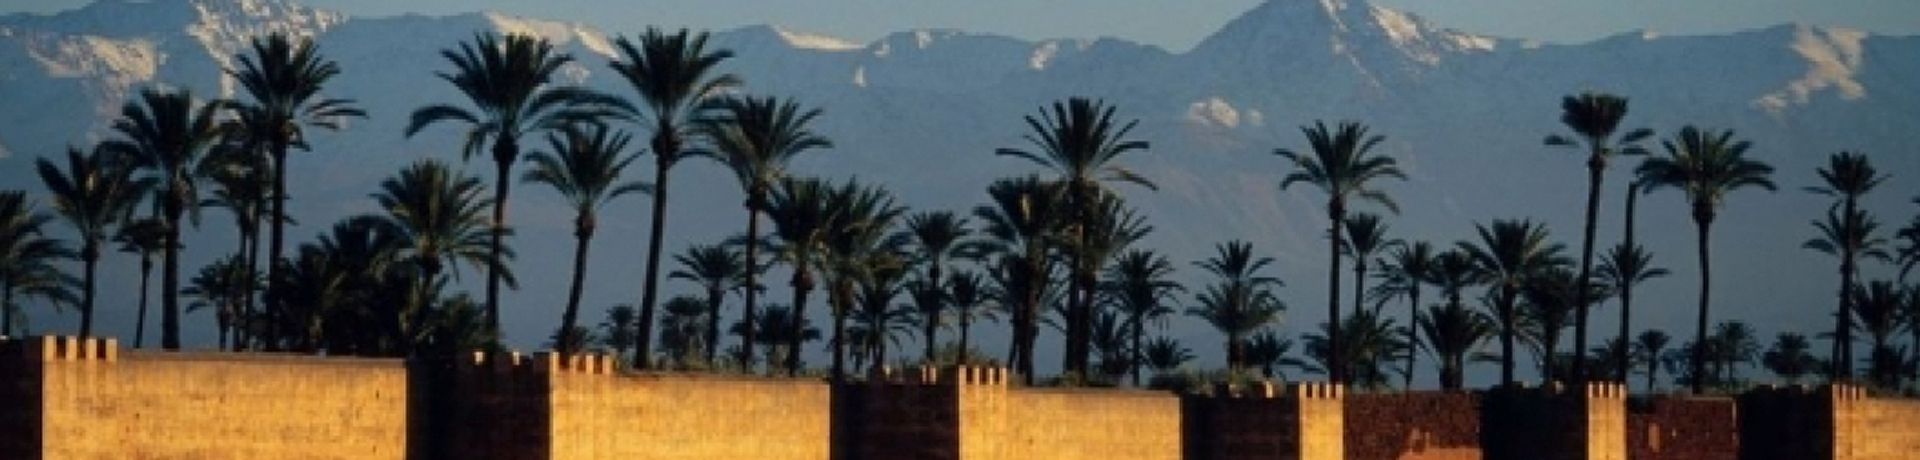 Incentivereis naar Marrakech